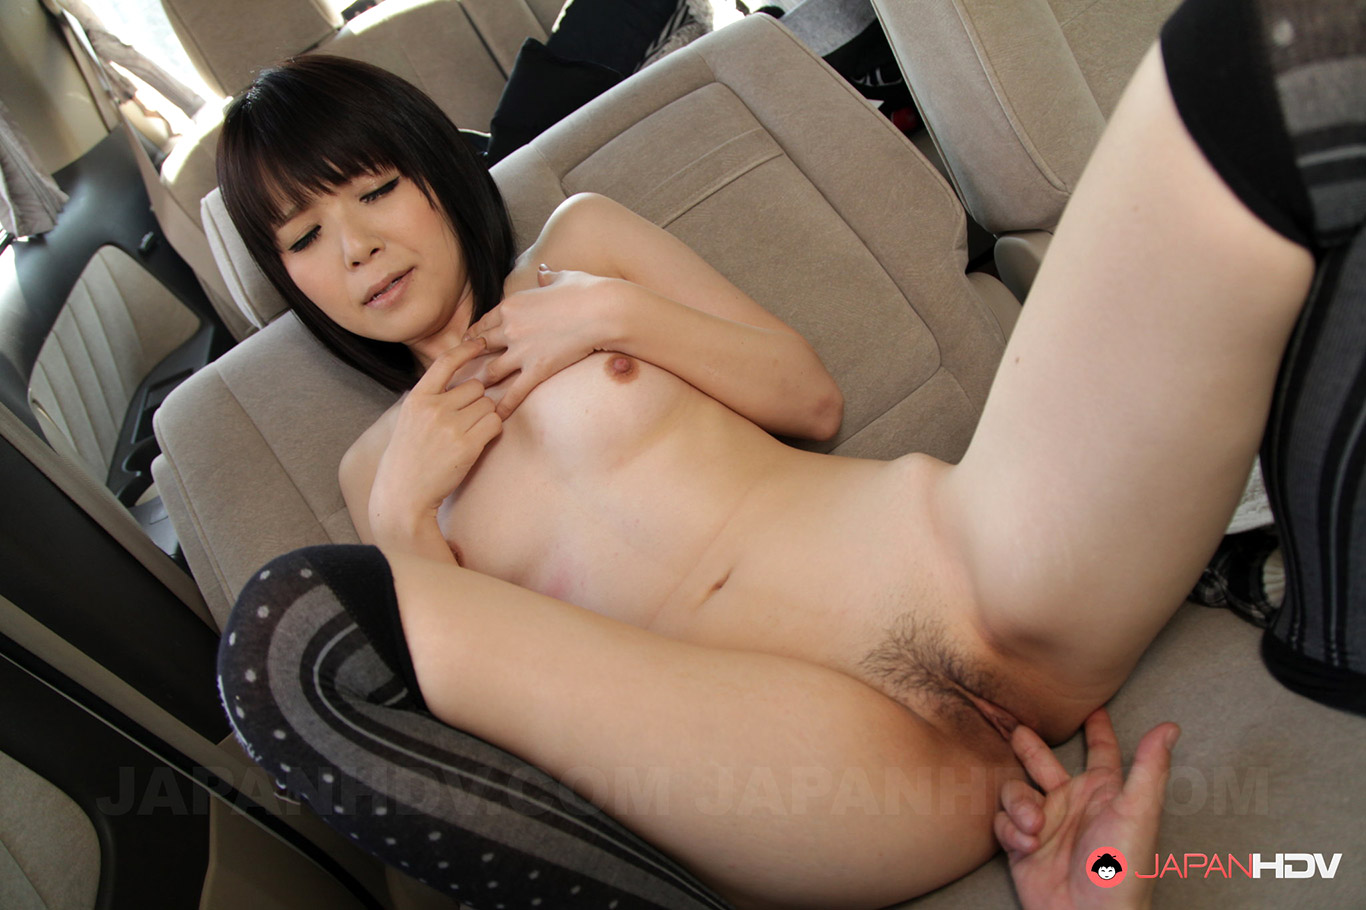 Tubetubetubecom Japanhdv Japanhdv Model Xvideo001 Hd -1421